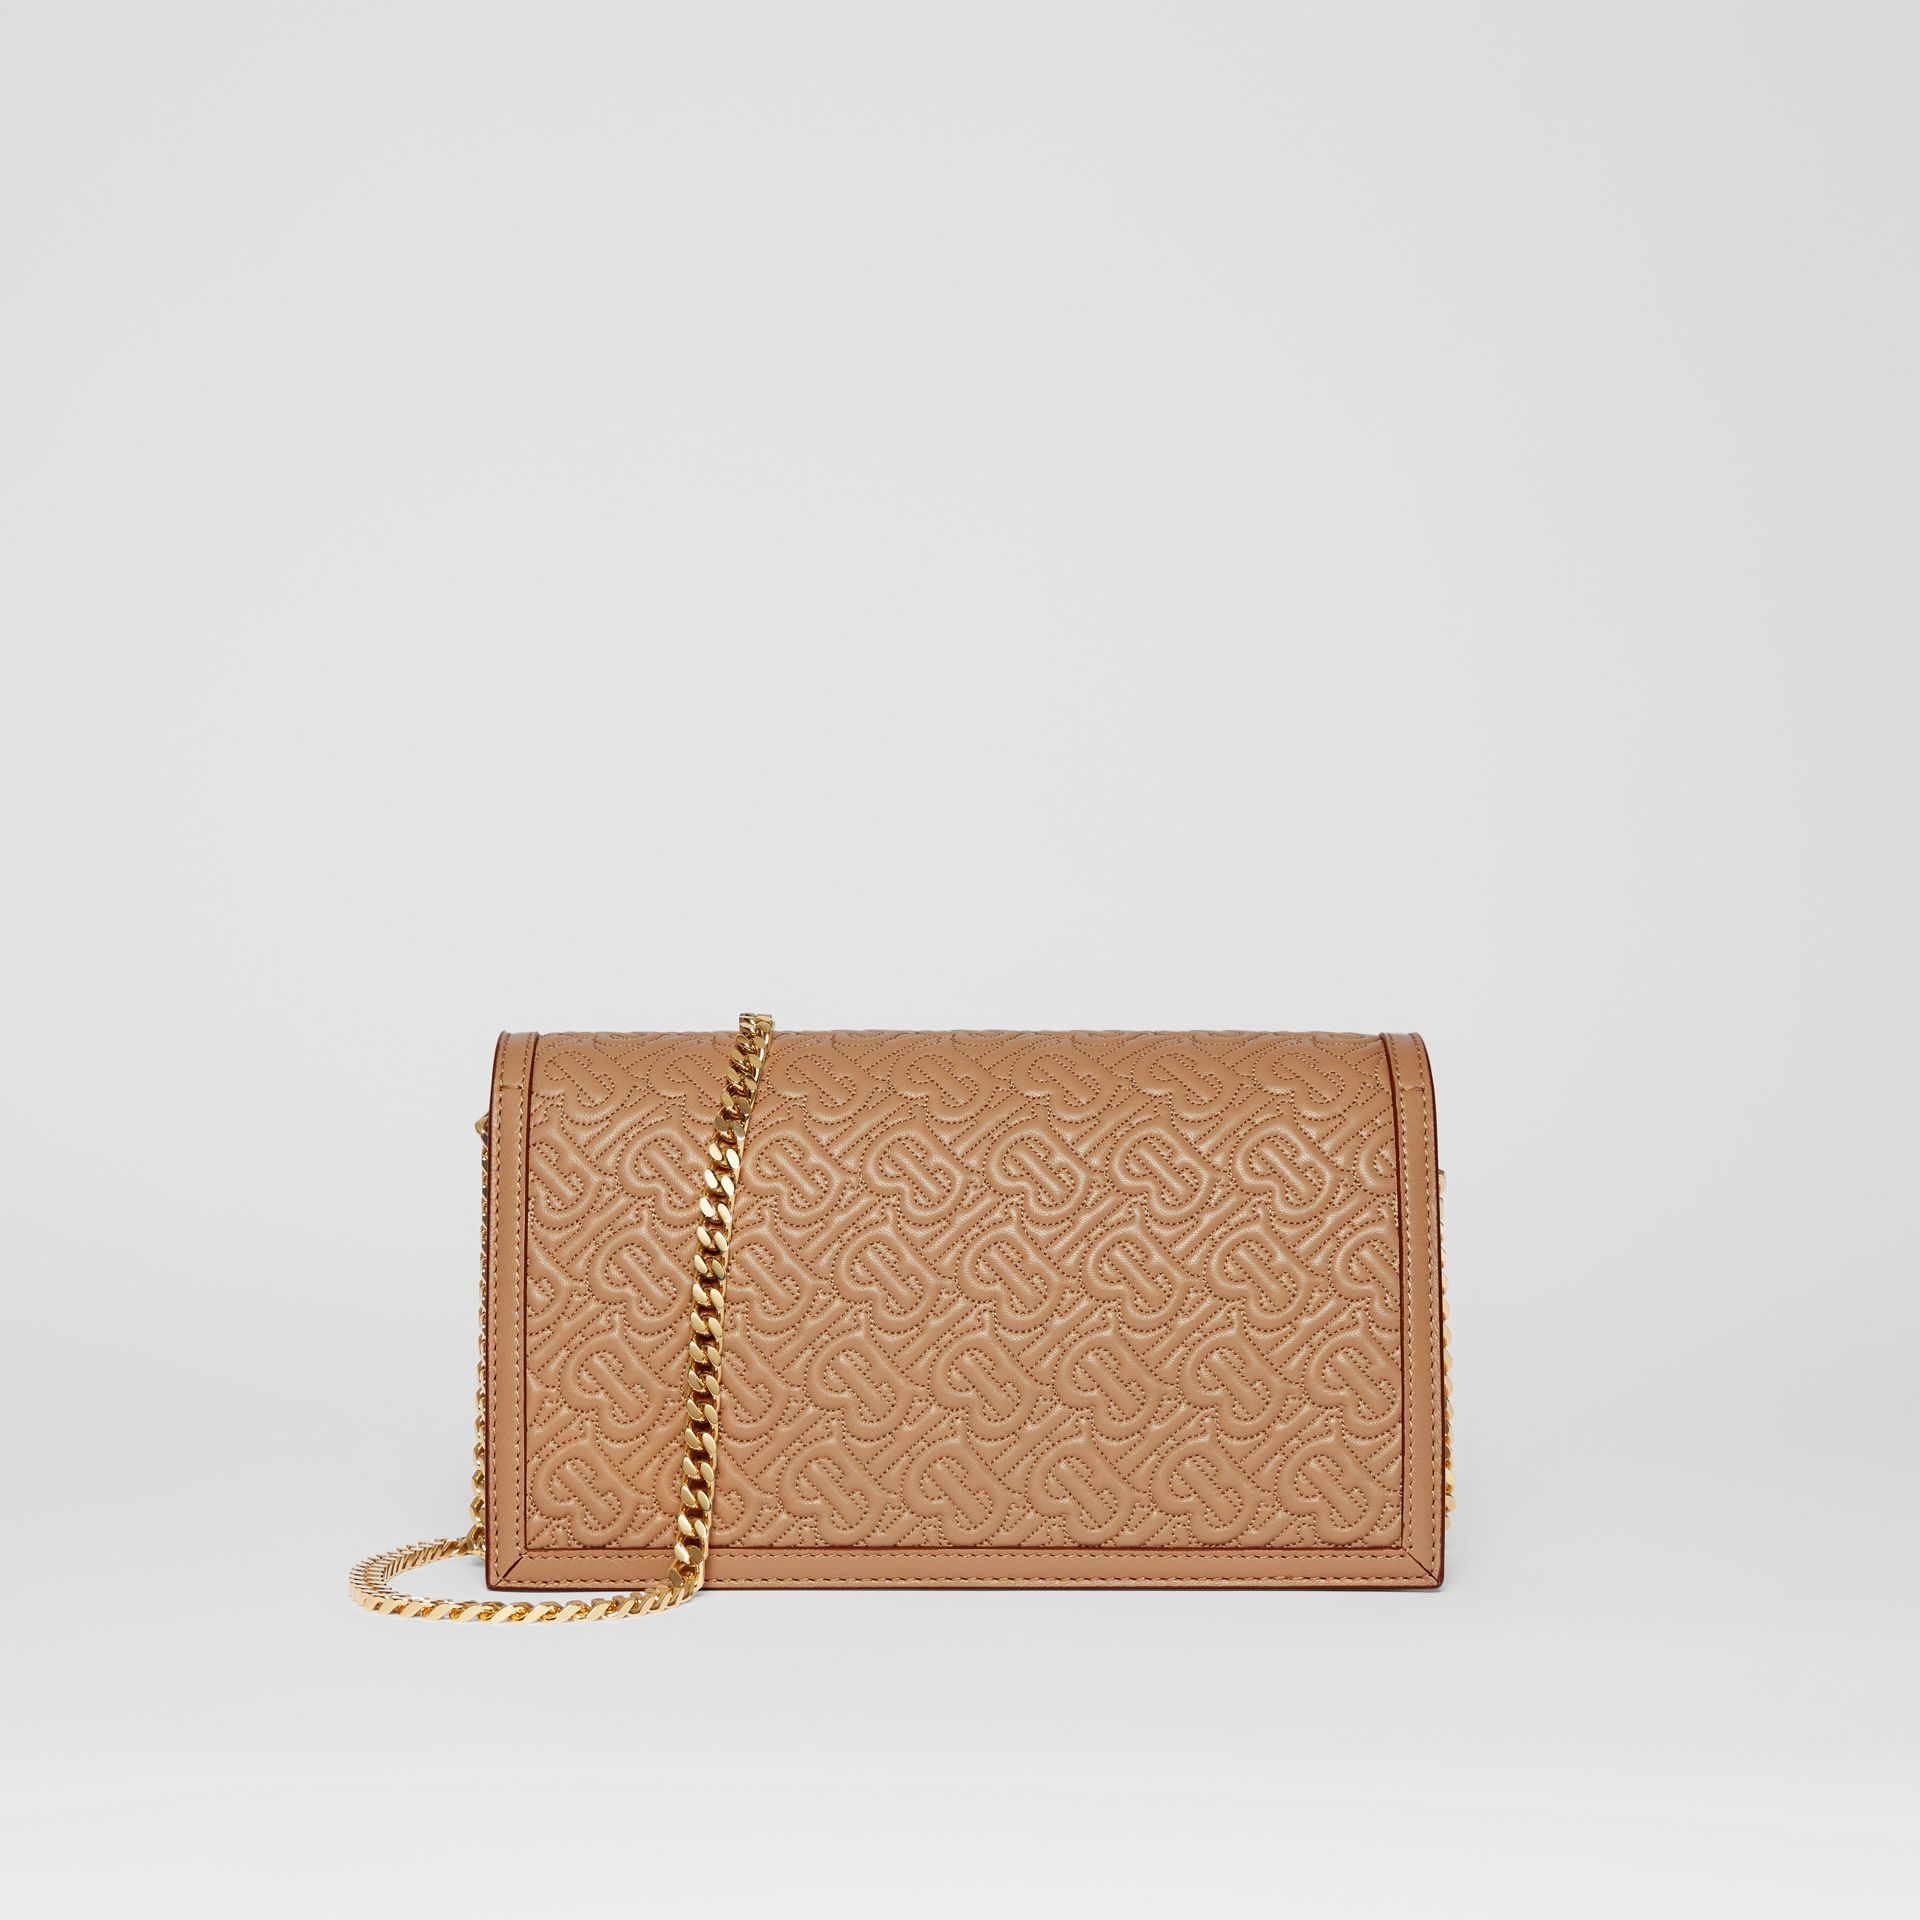 Small Quilted Monogram TB Envelope Clutch in Honey - Women | Burberry United Kingdom - gallery image 7